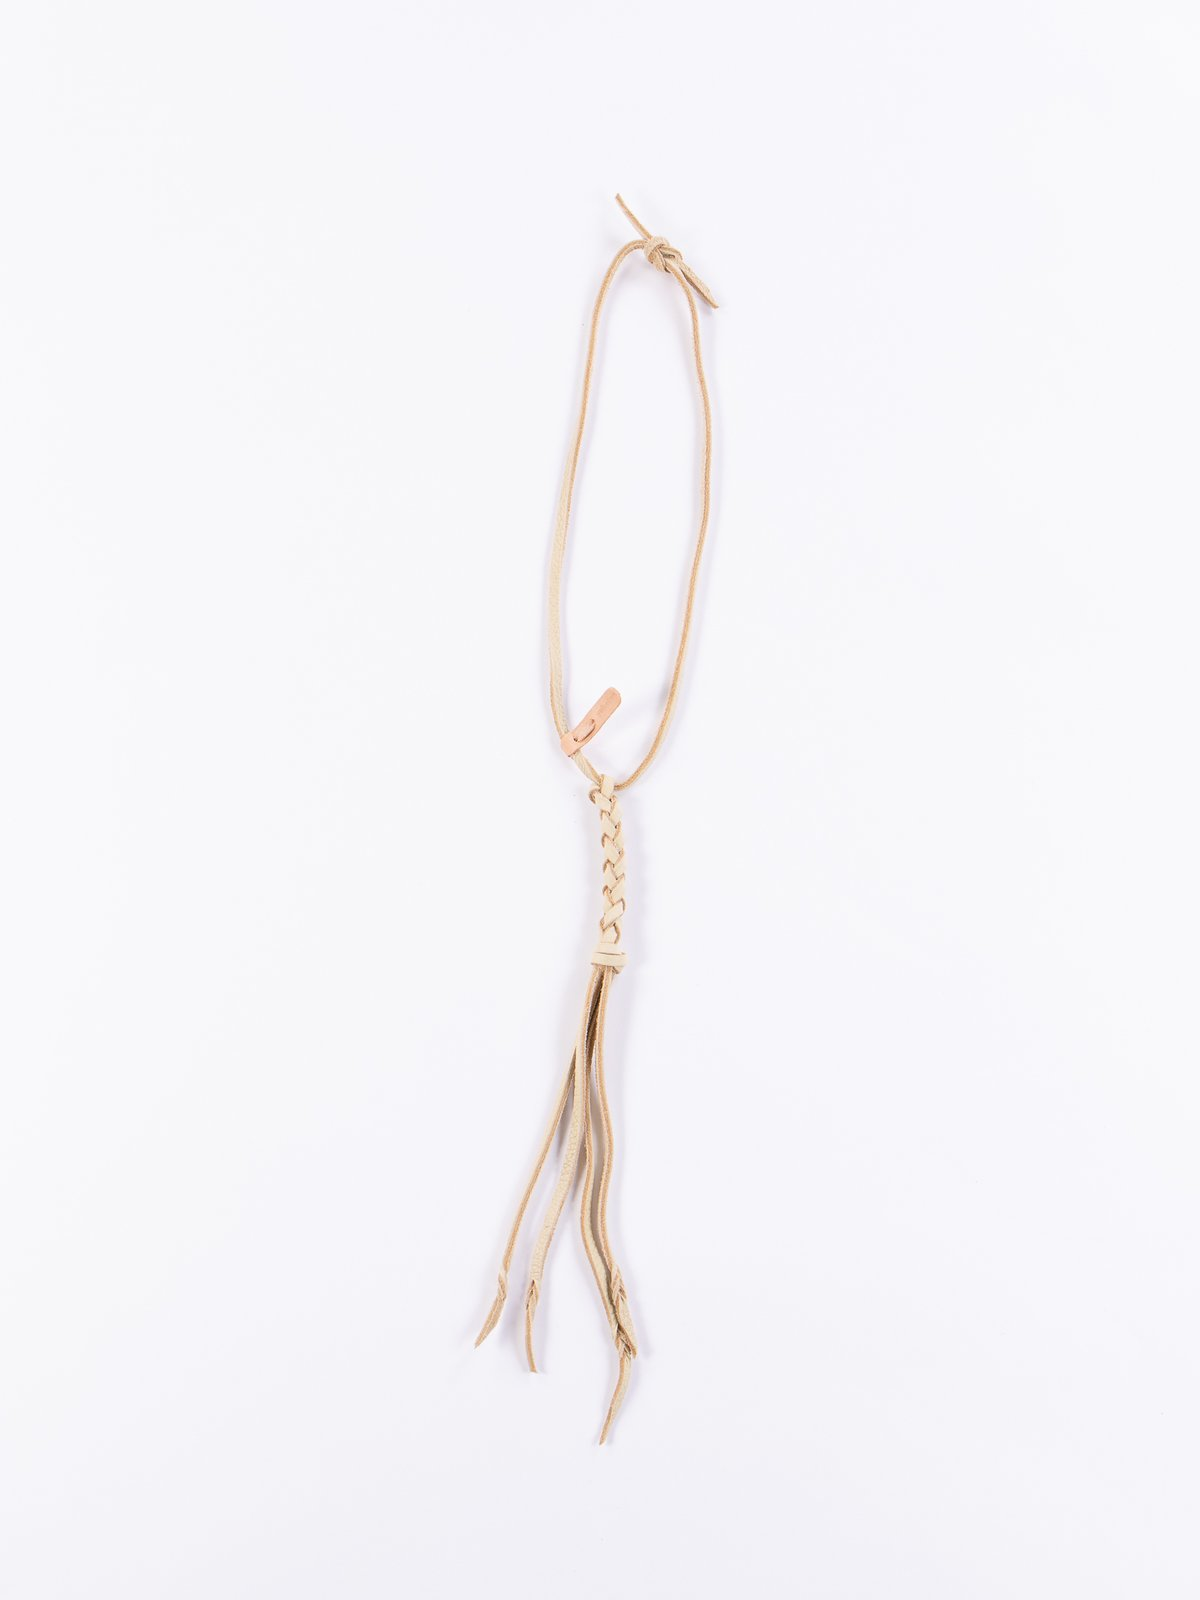 Cream Braided Leather Necklace - Image 1